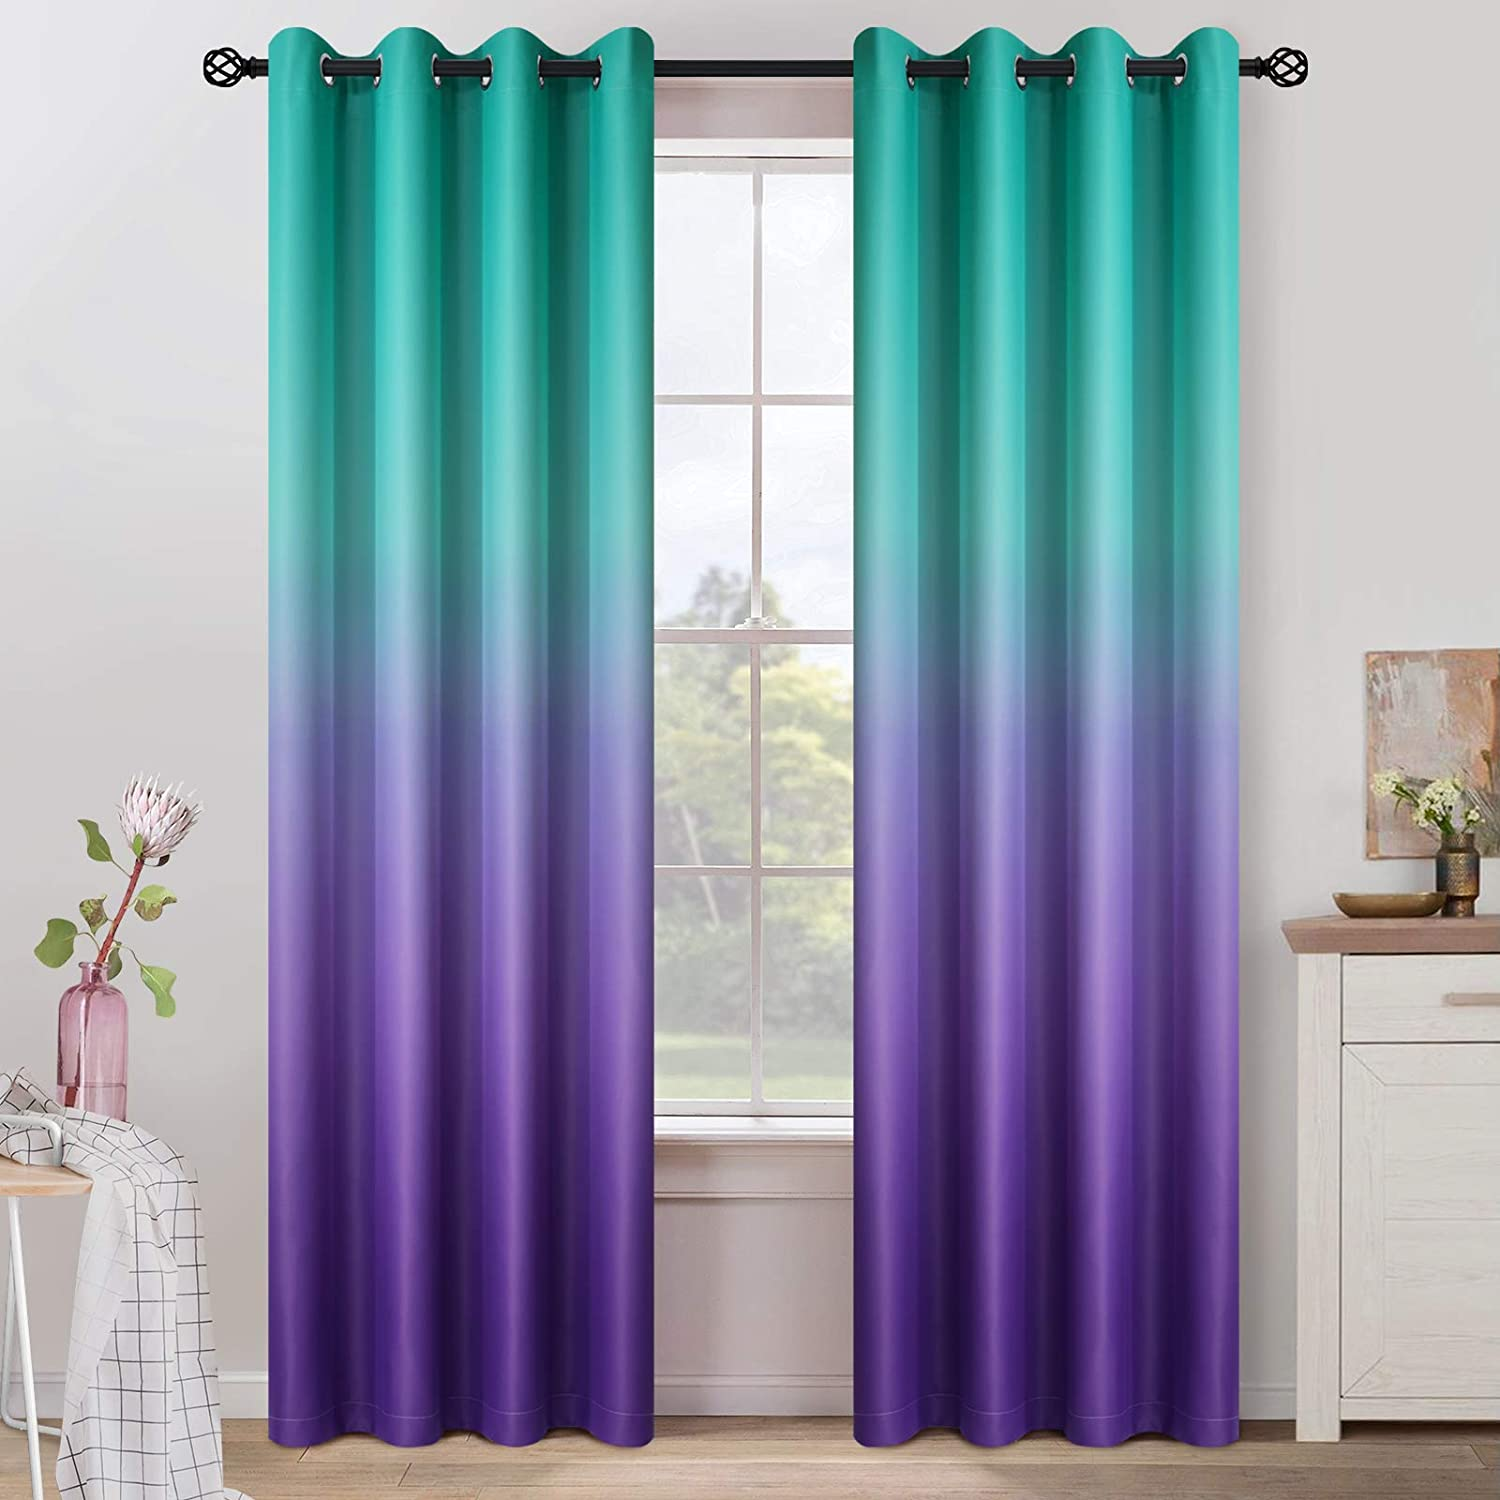 COSVIYA Grommet Ombre Room Darkening Curtains inches f Limited time trial Ranking TOP5 price 84 Length